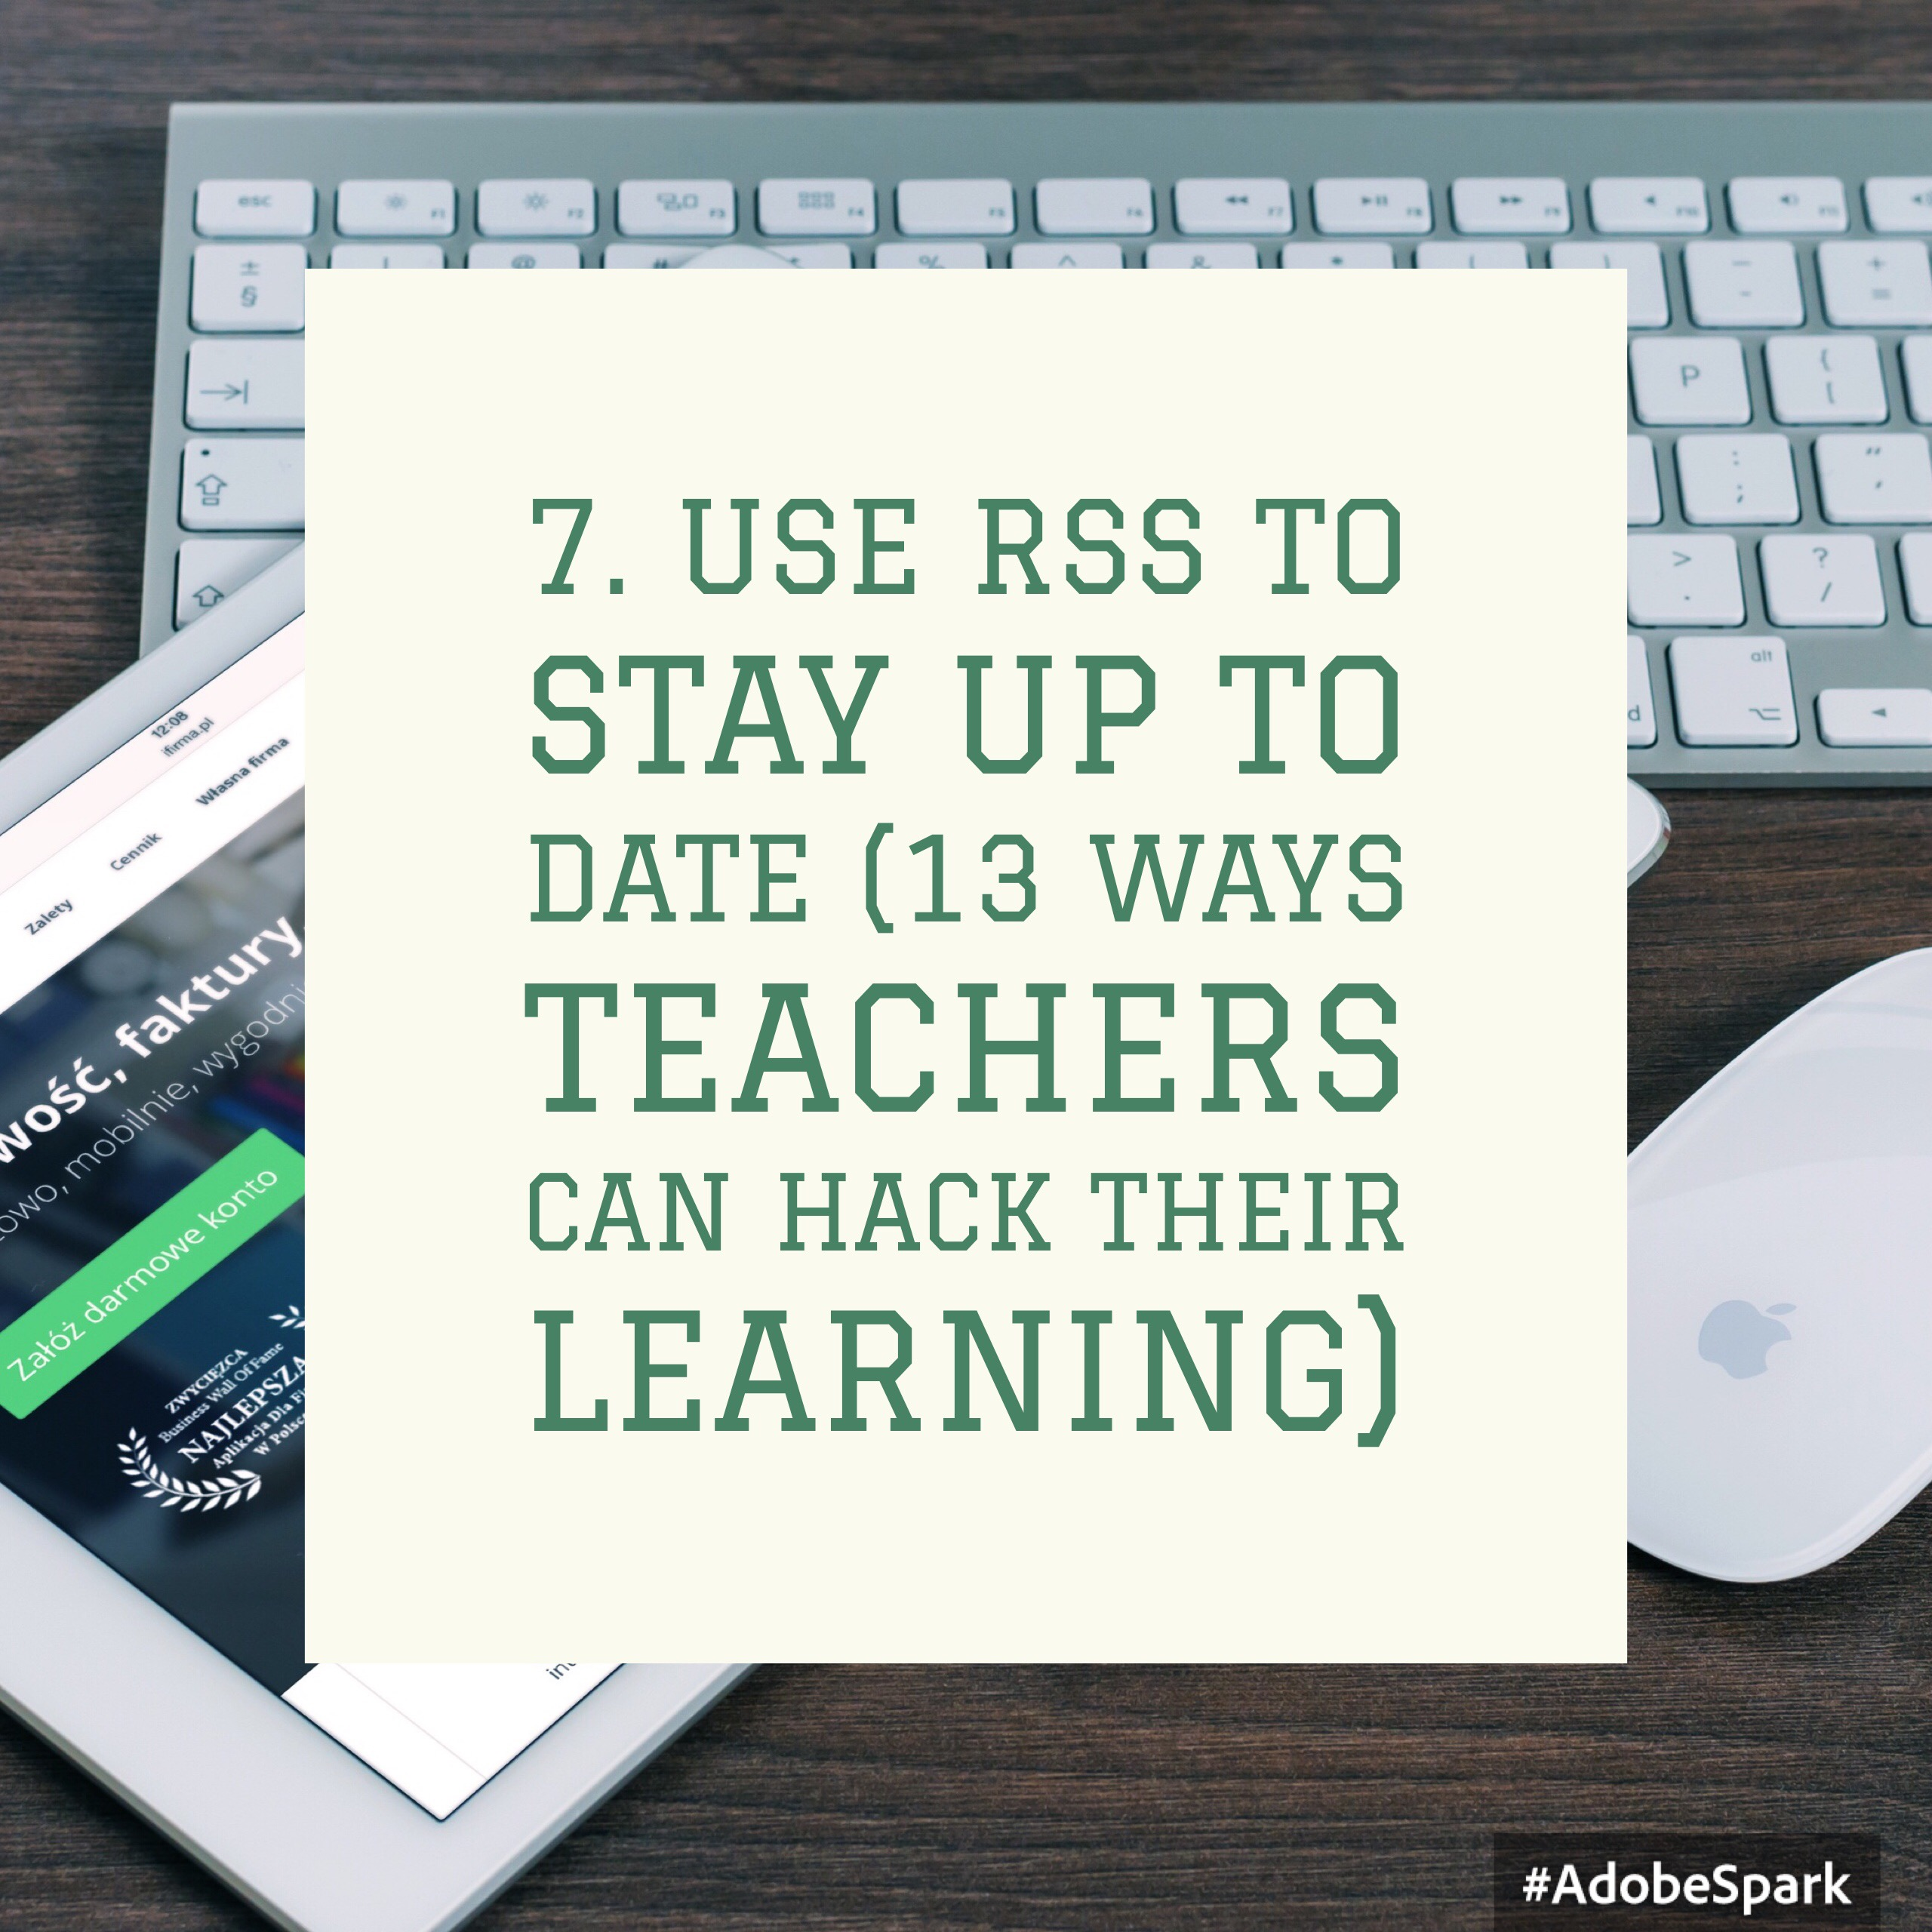 7. Use RSS to stay up to date (13 Ways Teachers Can Hack Their Learning)